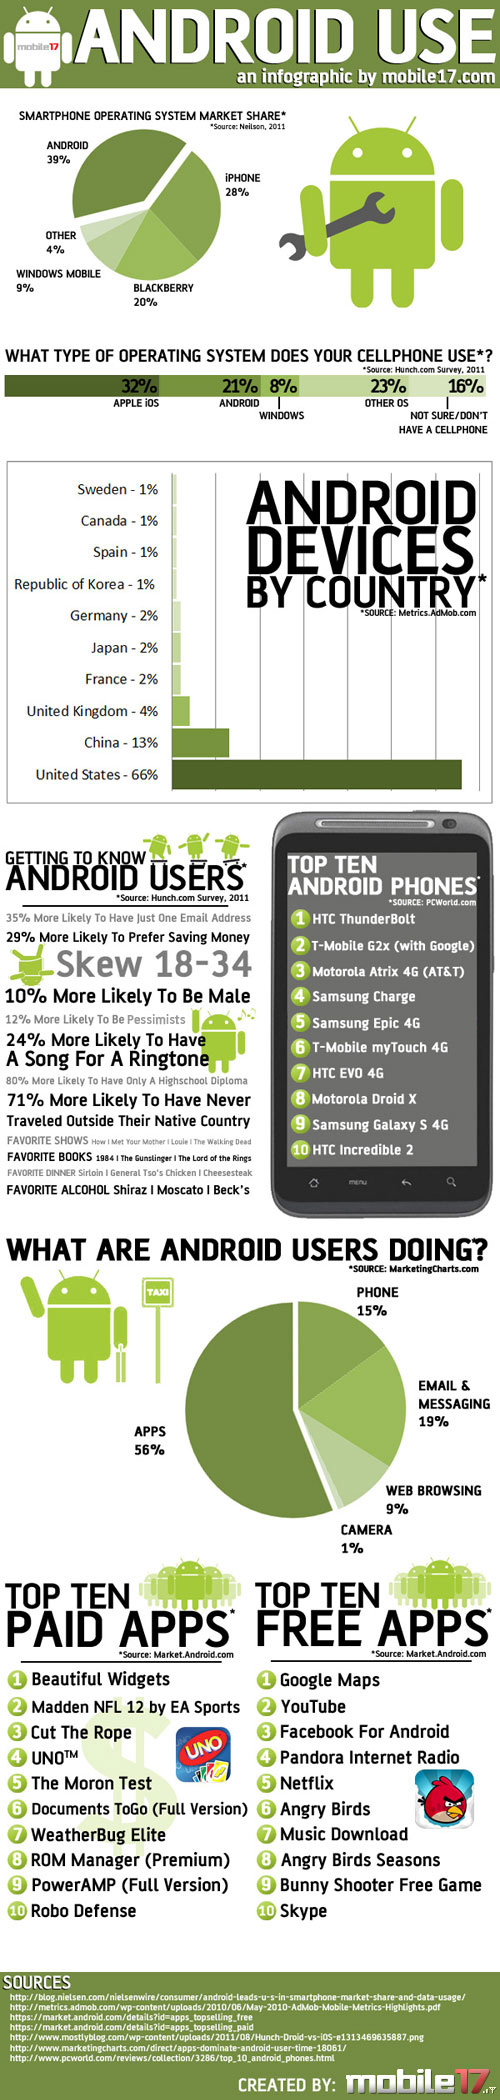 mobile17 infographic